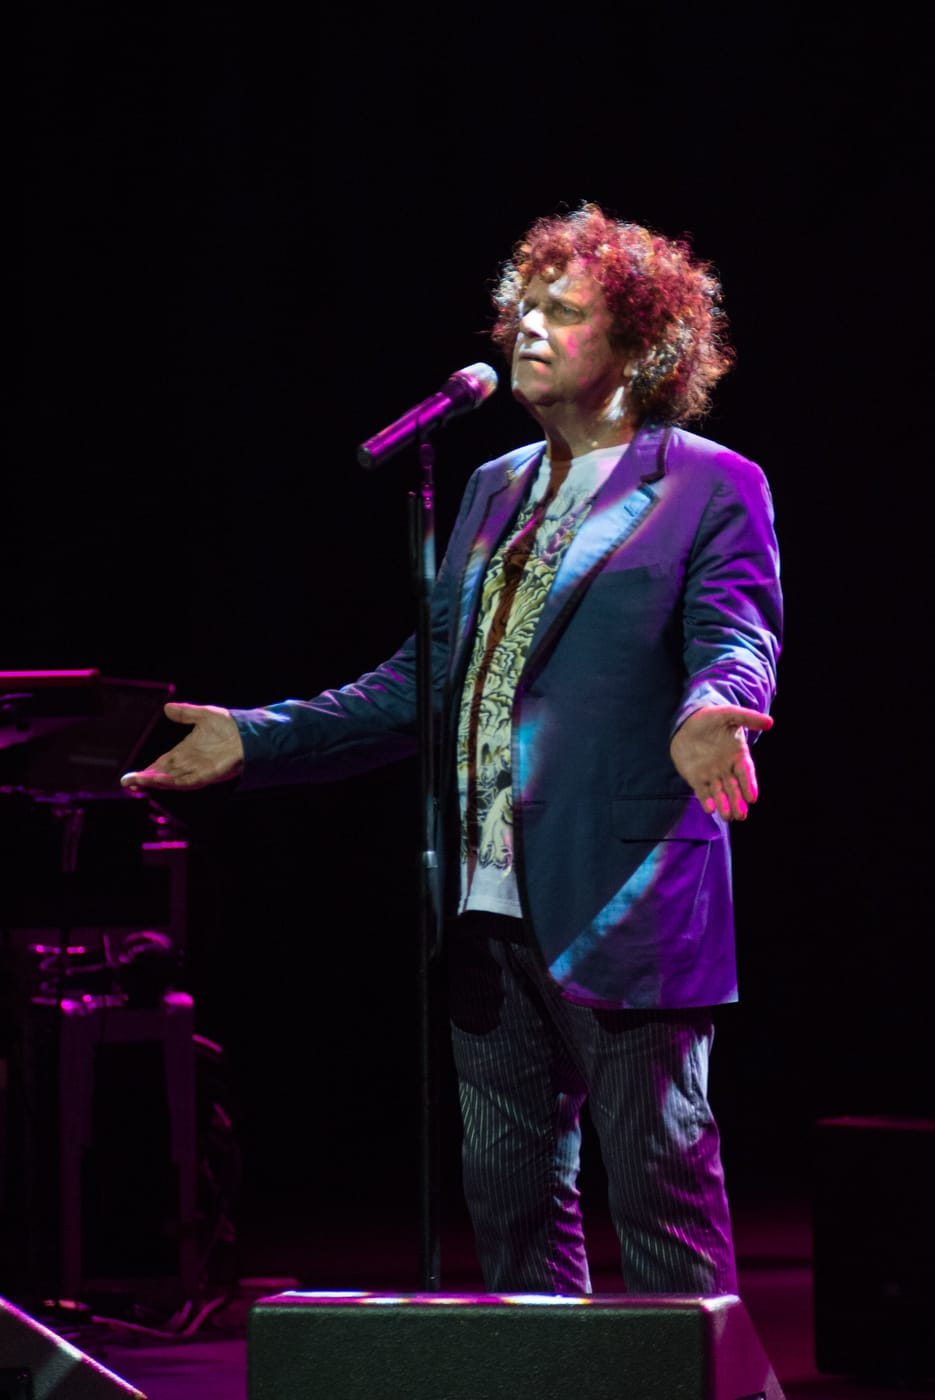 Leo Sayer at Bord Gais Energy Theatre by Sean Smyth (16-10-15) (64 of 129)